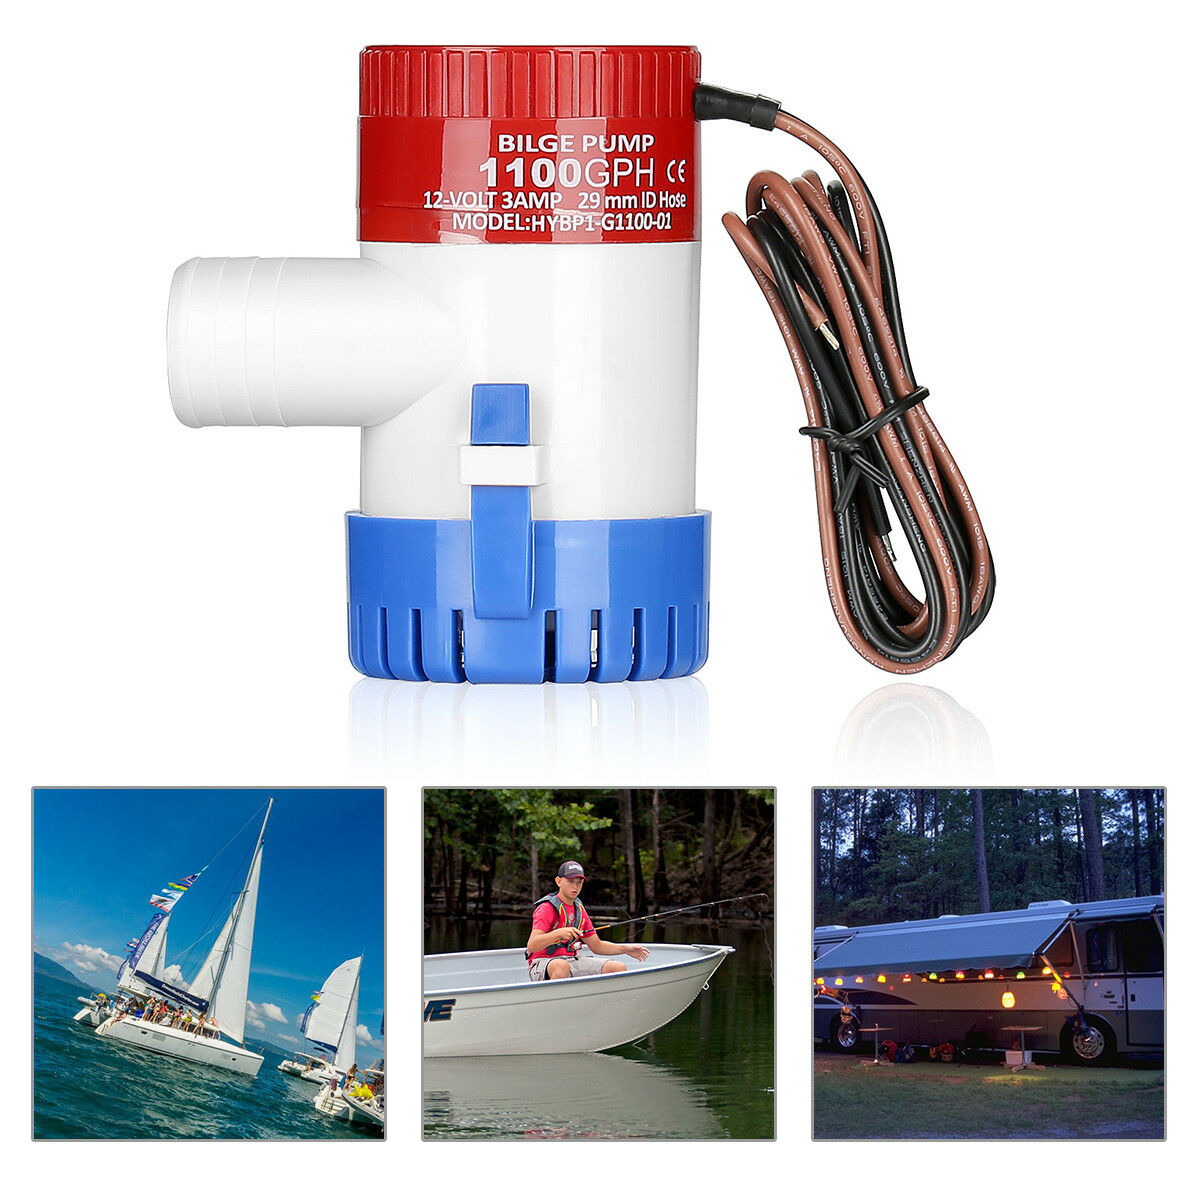 <font><b>1100</b></font> Professional 3.0A <font><b>GPH</b></font> 12V Submersible Boat Electric <font><b>Bilge</b></font> <font><b>Pump</b></font> 1-1/8 Inch Outlet For Boat <font><b>Bilge</b></font> <font><b>Pump</b></font> image